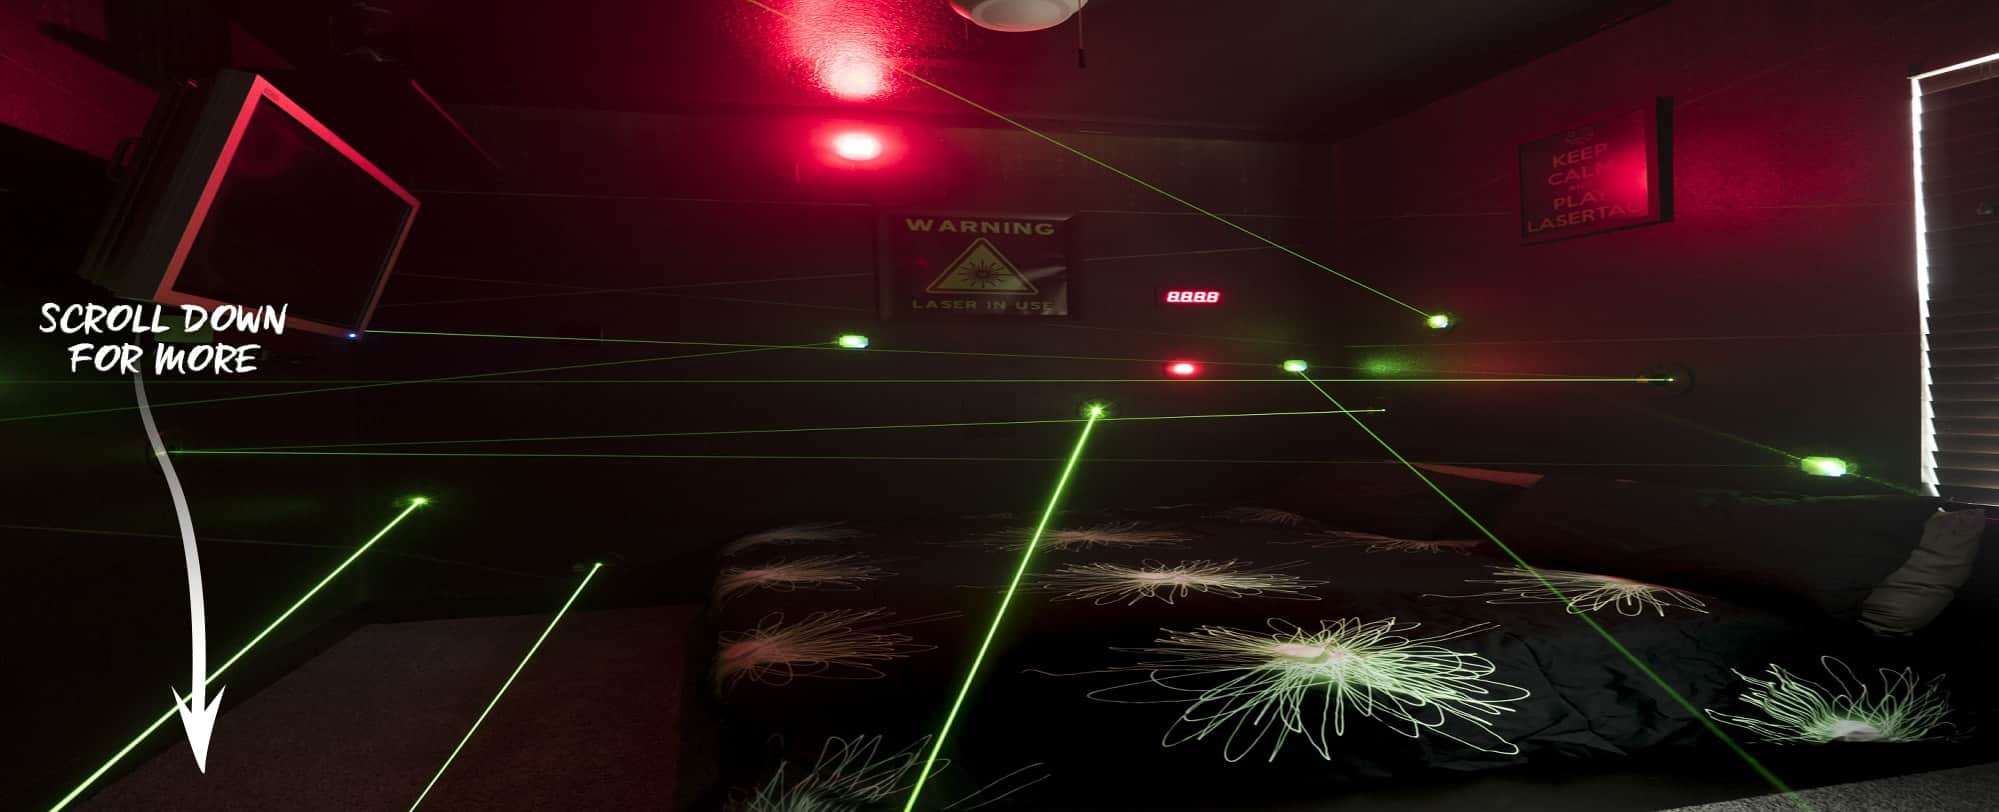 Laser Maze at The Great Escape Lakeside Vacation Home Rental